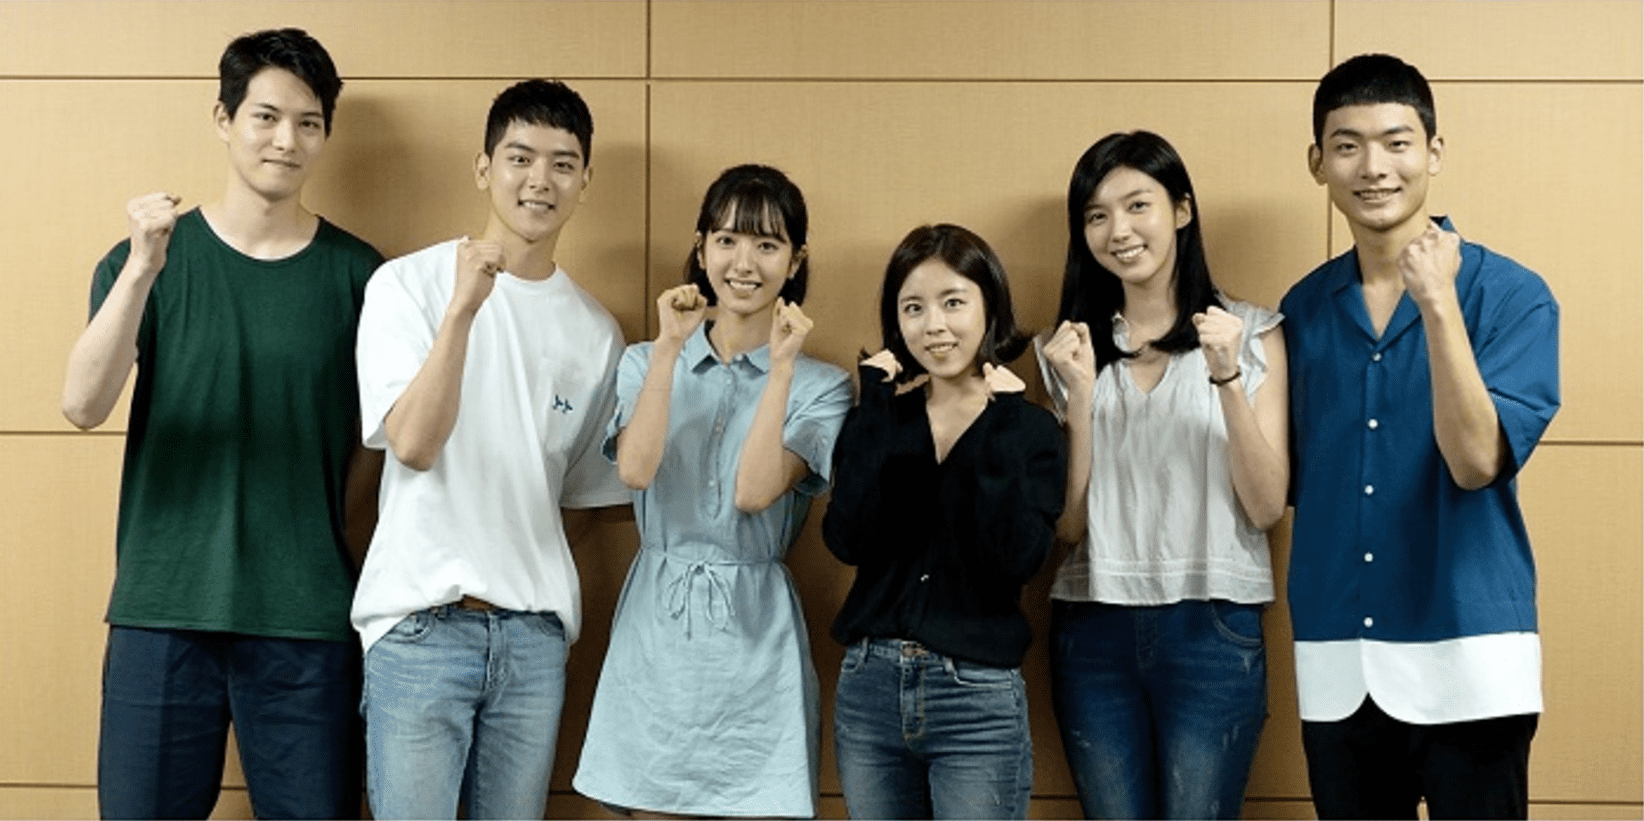 Lingerie Girls Generation Cast Gather For First Script Reading